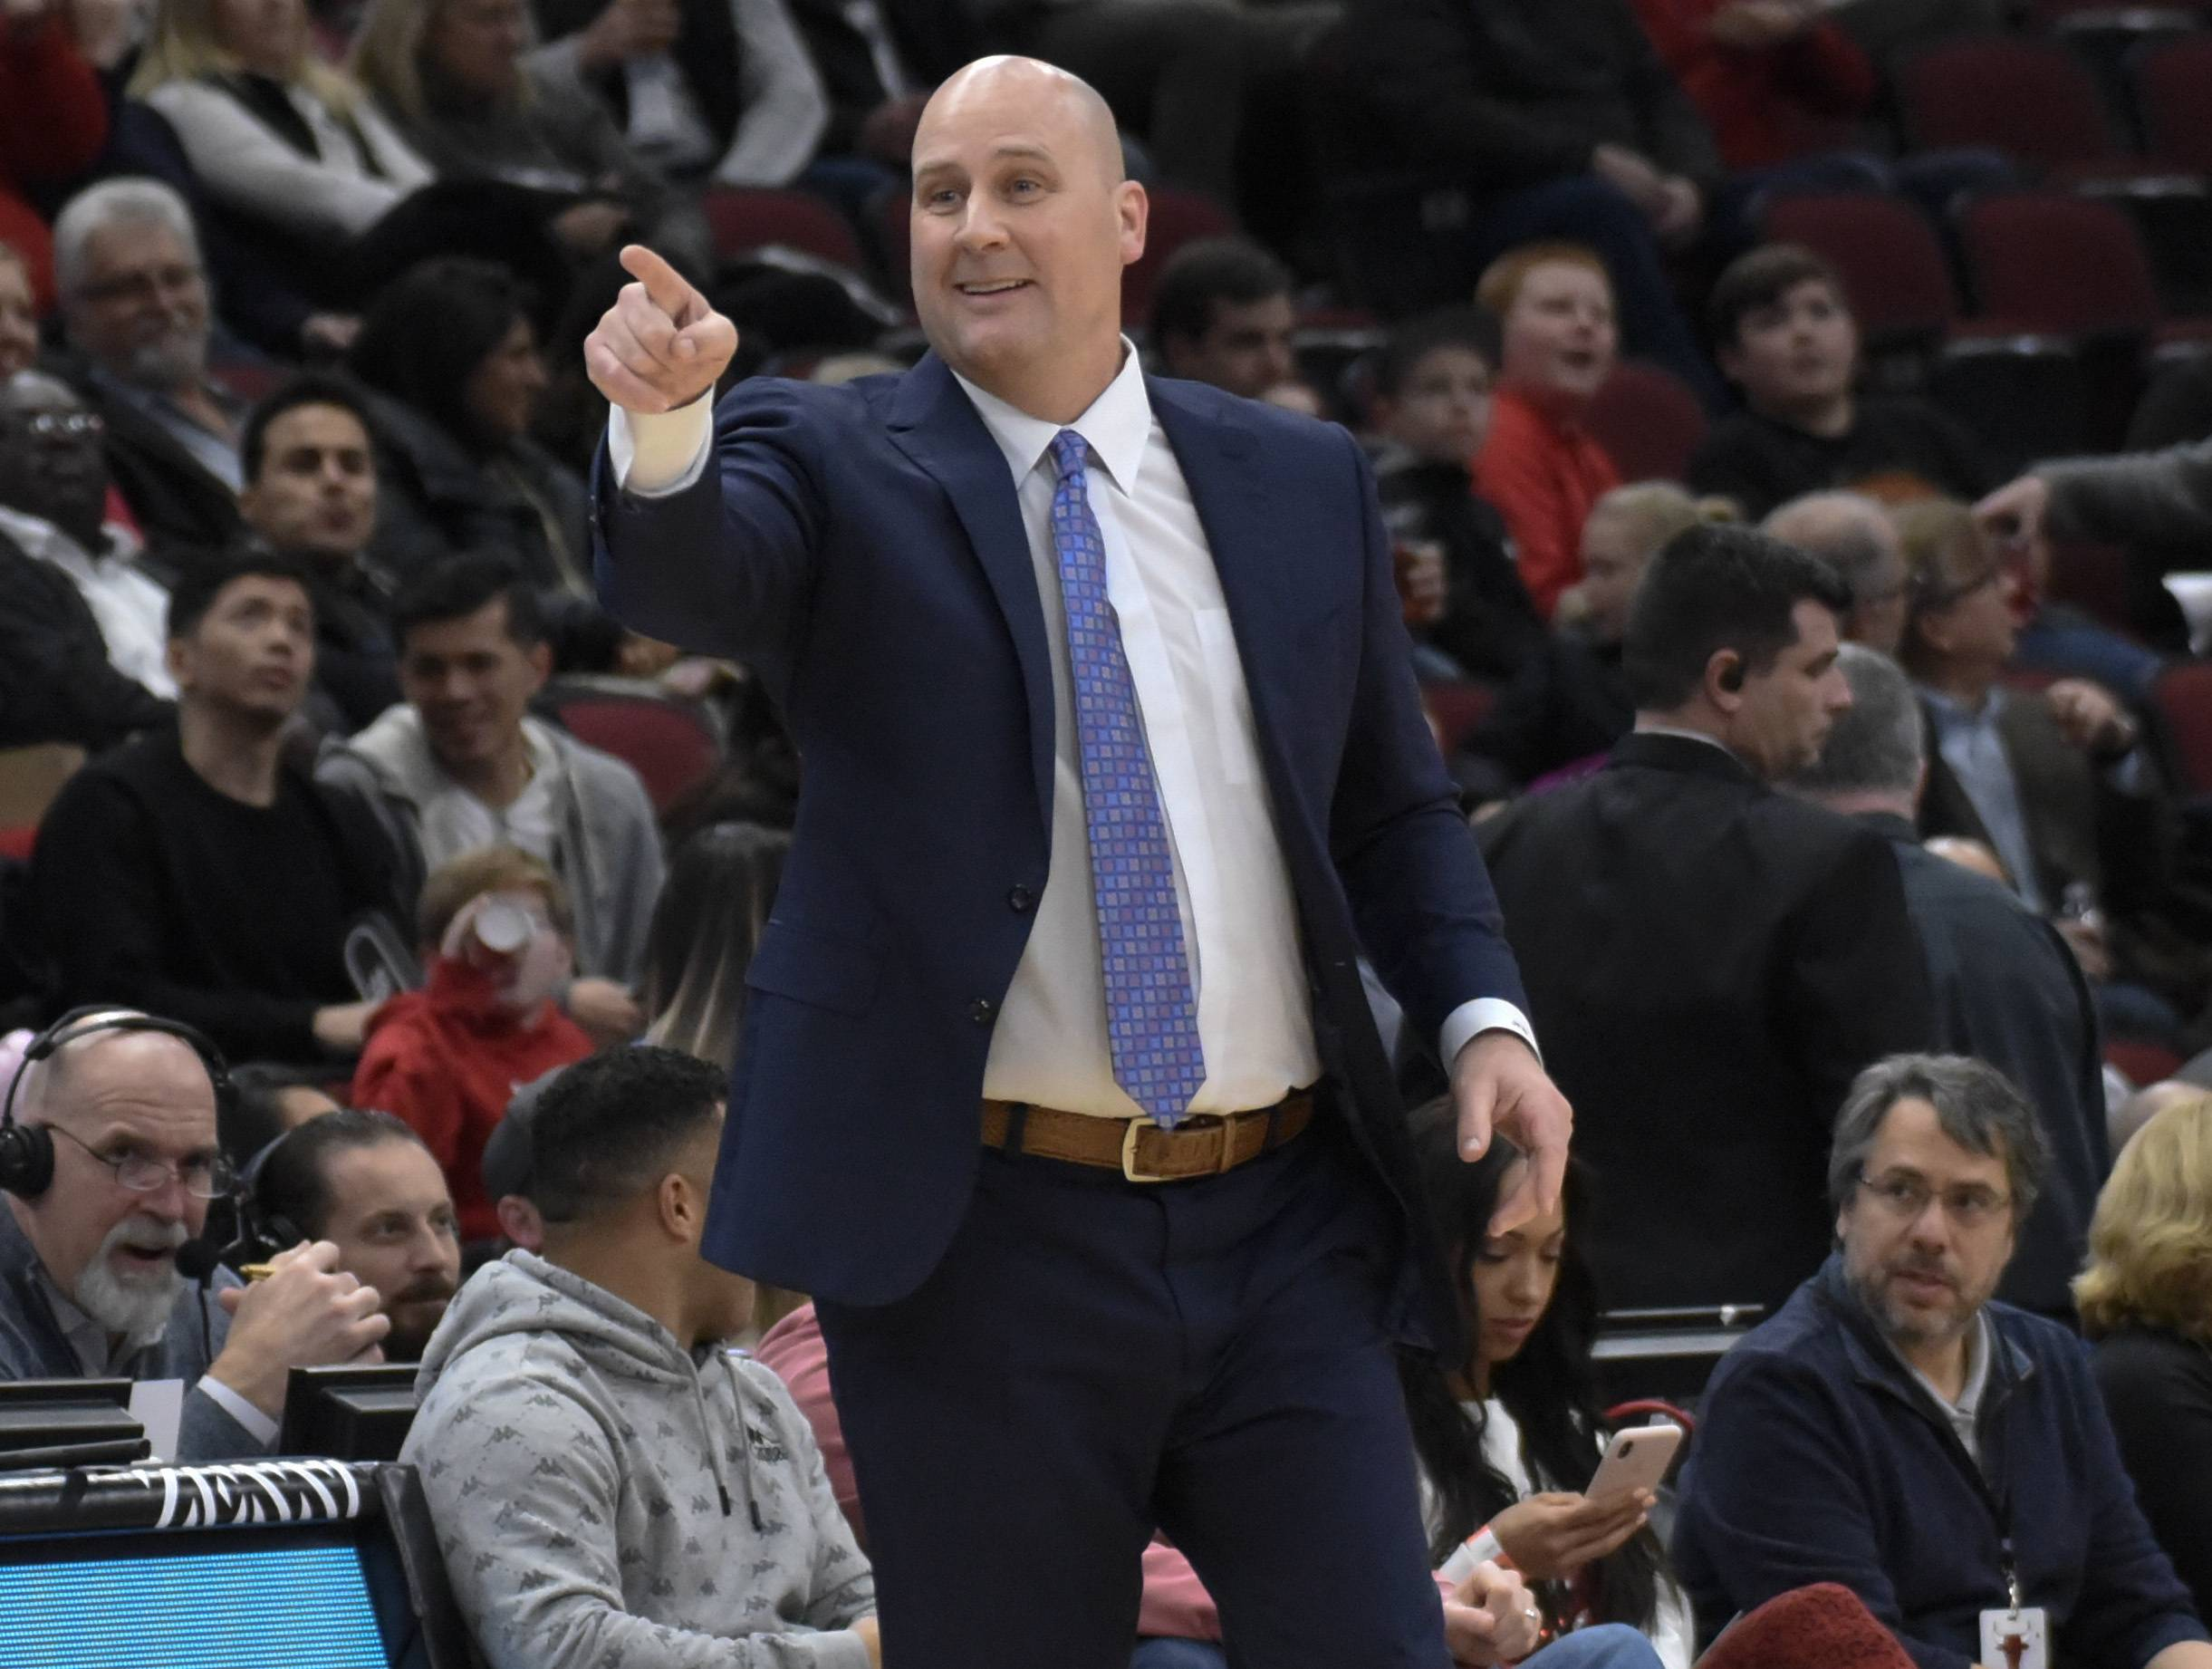 Chicago Bulls head coach Jim Boylen gestures to his team during the first half of an NBA basketball game against the Sacramento Kings, Monday, Dec. 10, 2018, in Chicago. (AP Photo/David Banks)